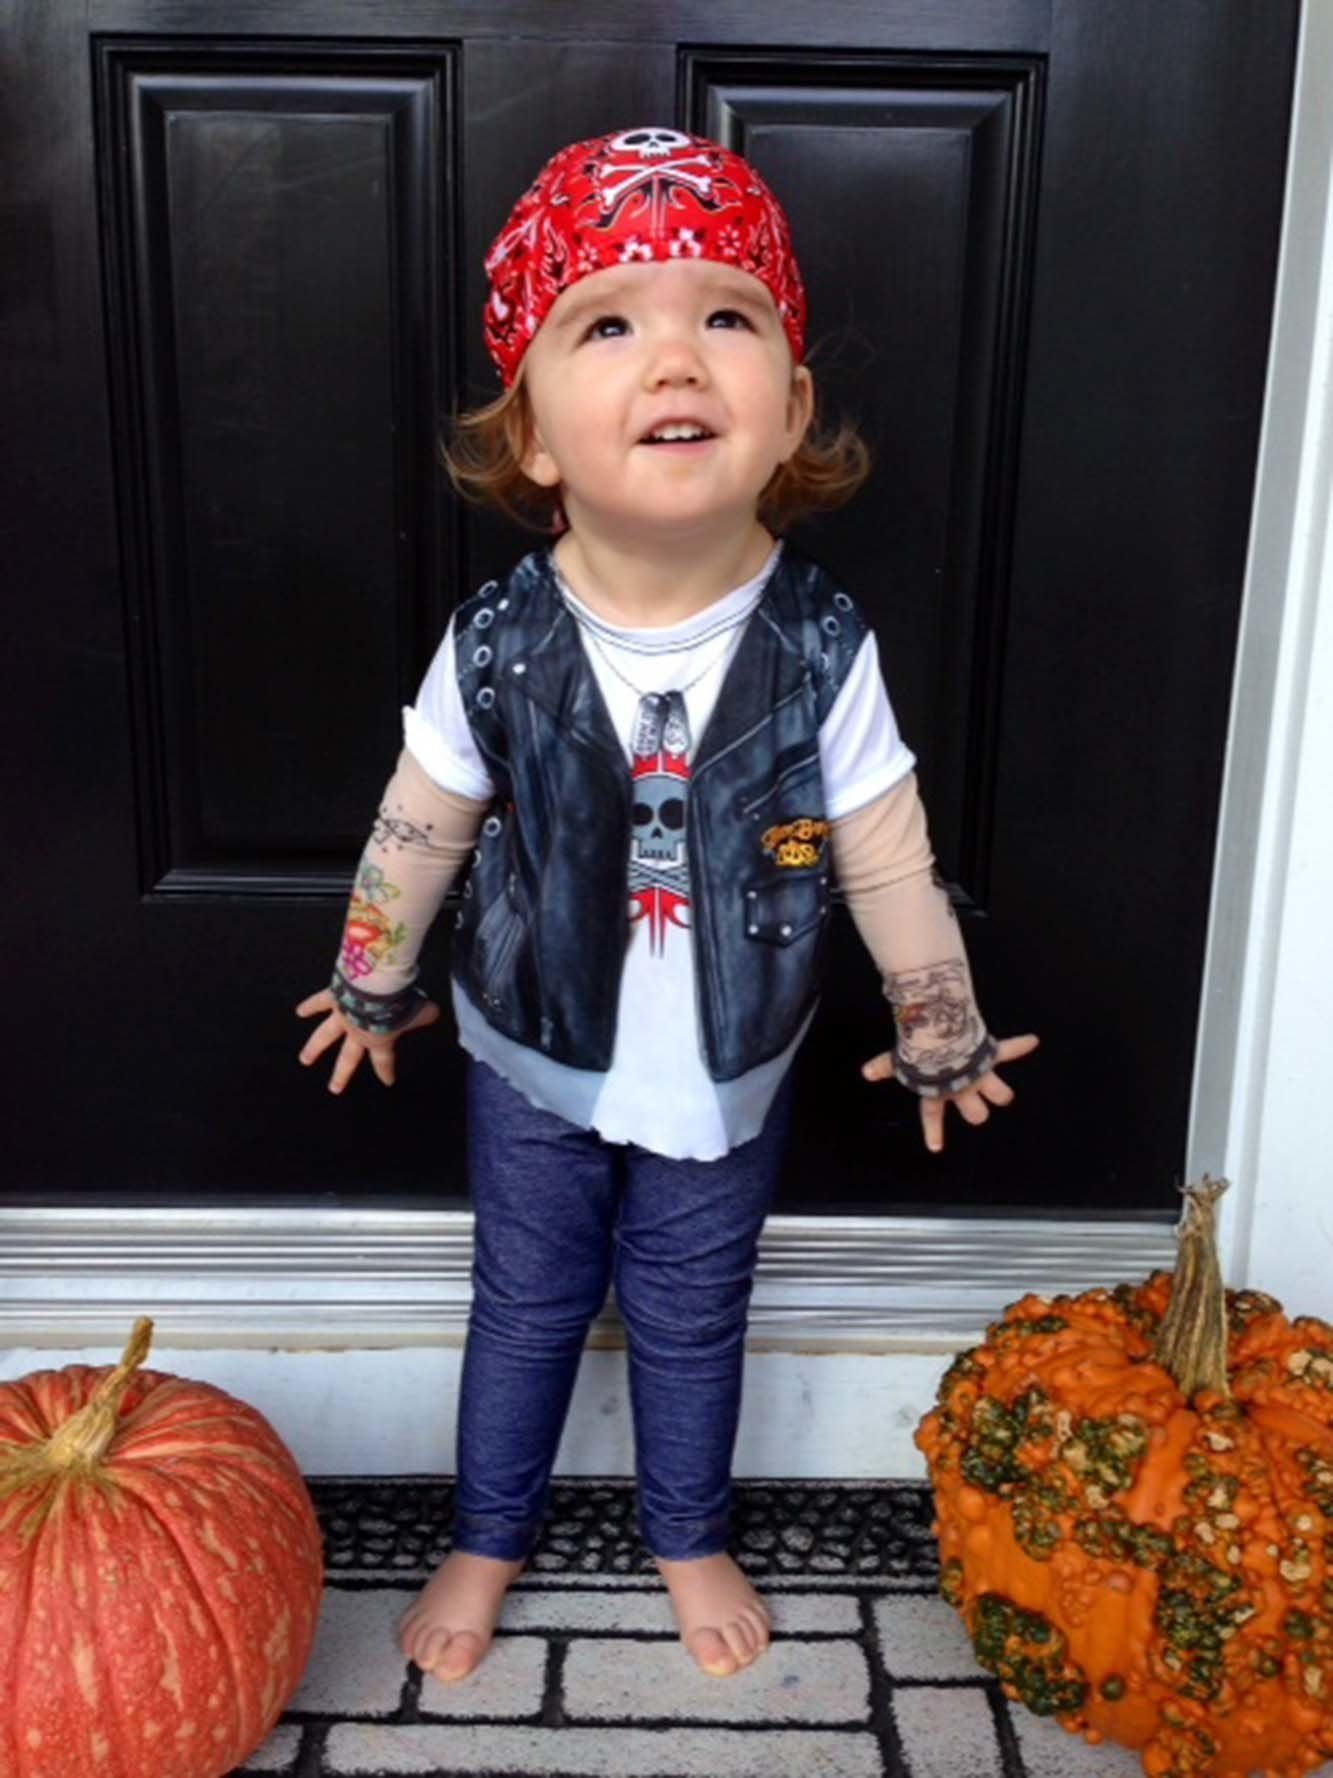 sc 1 st  HuffPost & 57 Fierce Halloween Costumes For Girls Who Rock | HuffPost